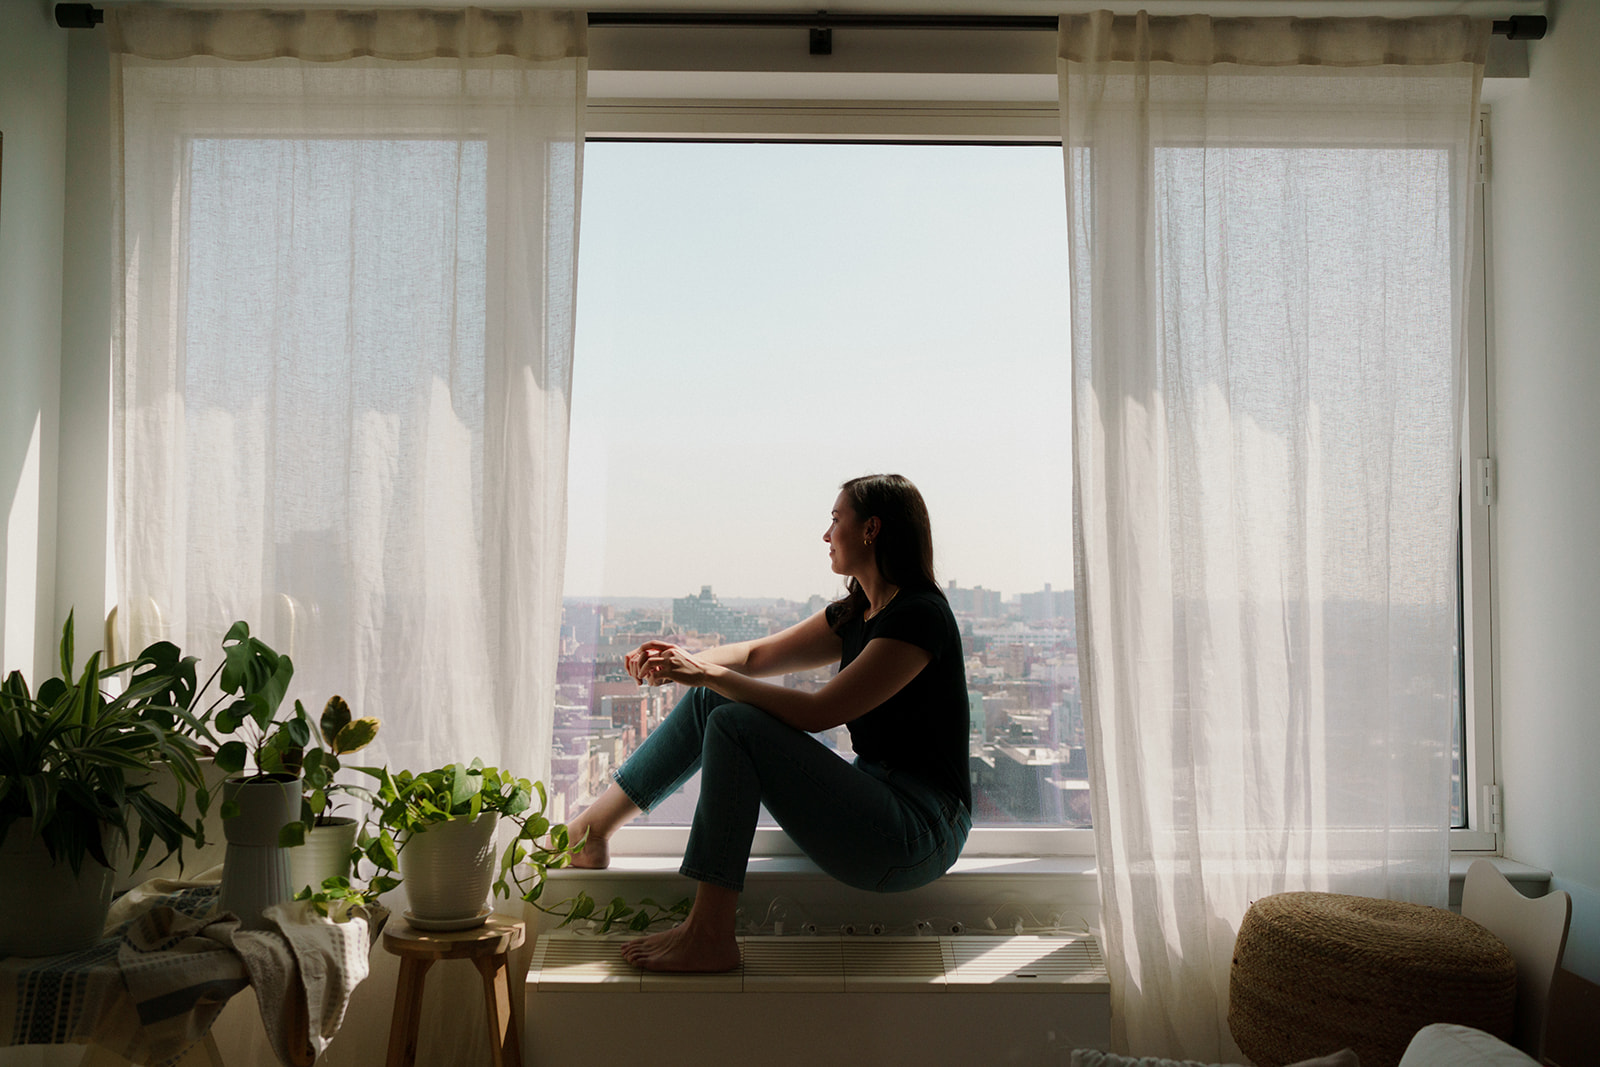 woman sitting in window sill looking at city